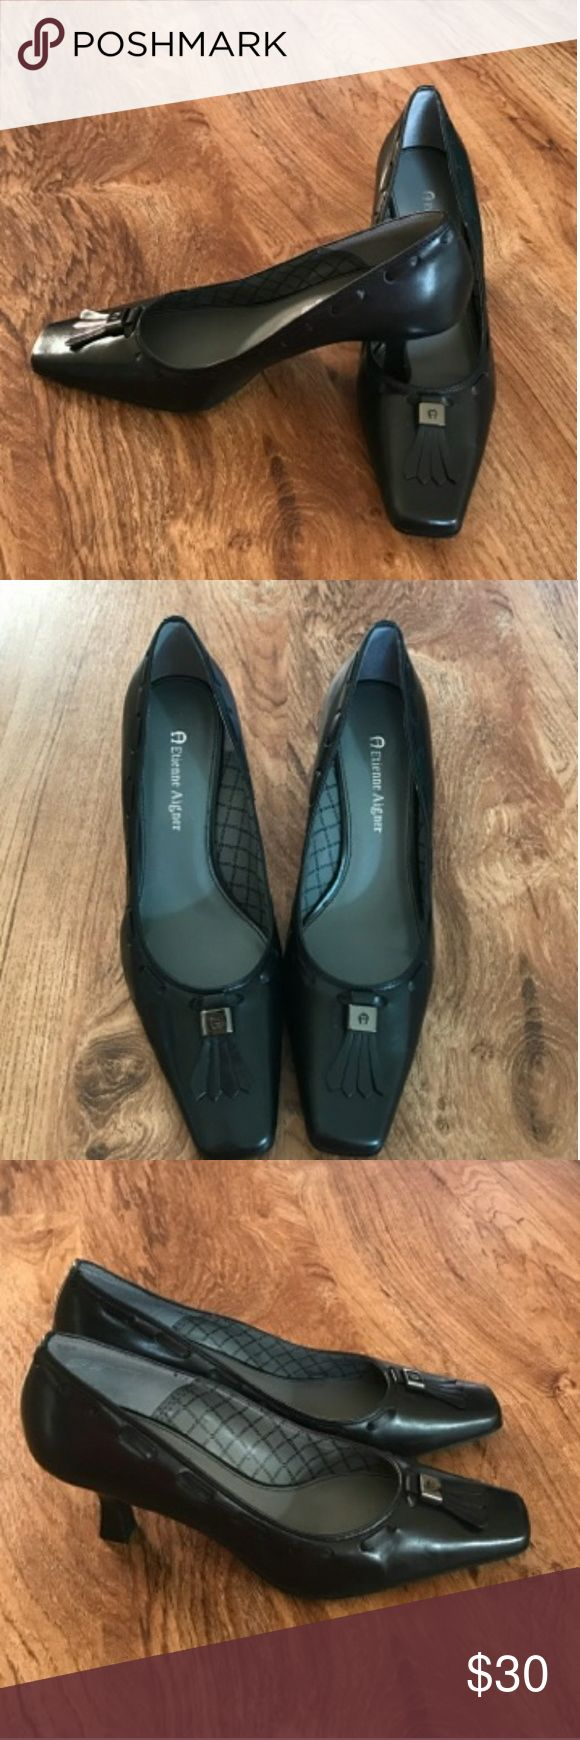 Etienne Aigner Pumps Etienne Aigner Pumps in excellent condition. Like New Etienne Aigner Shoes Heels